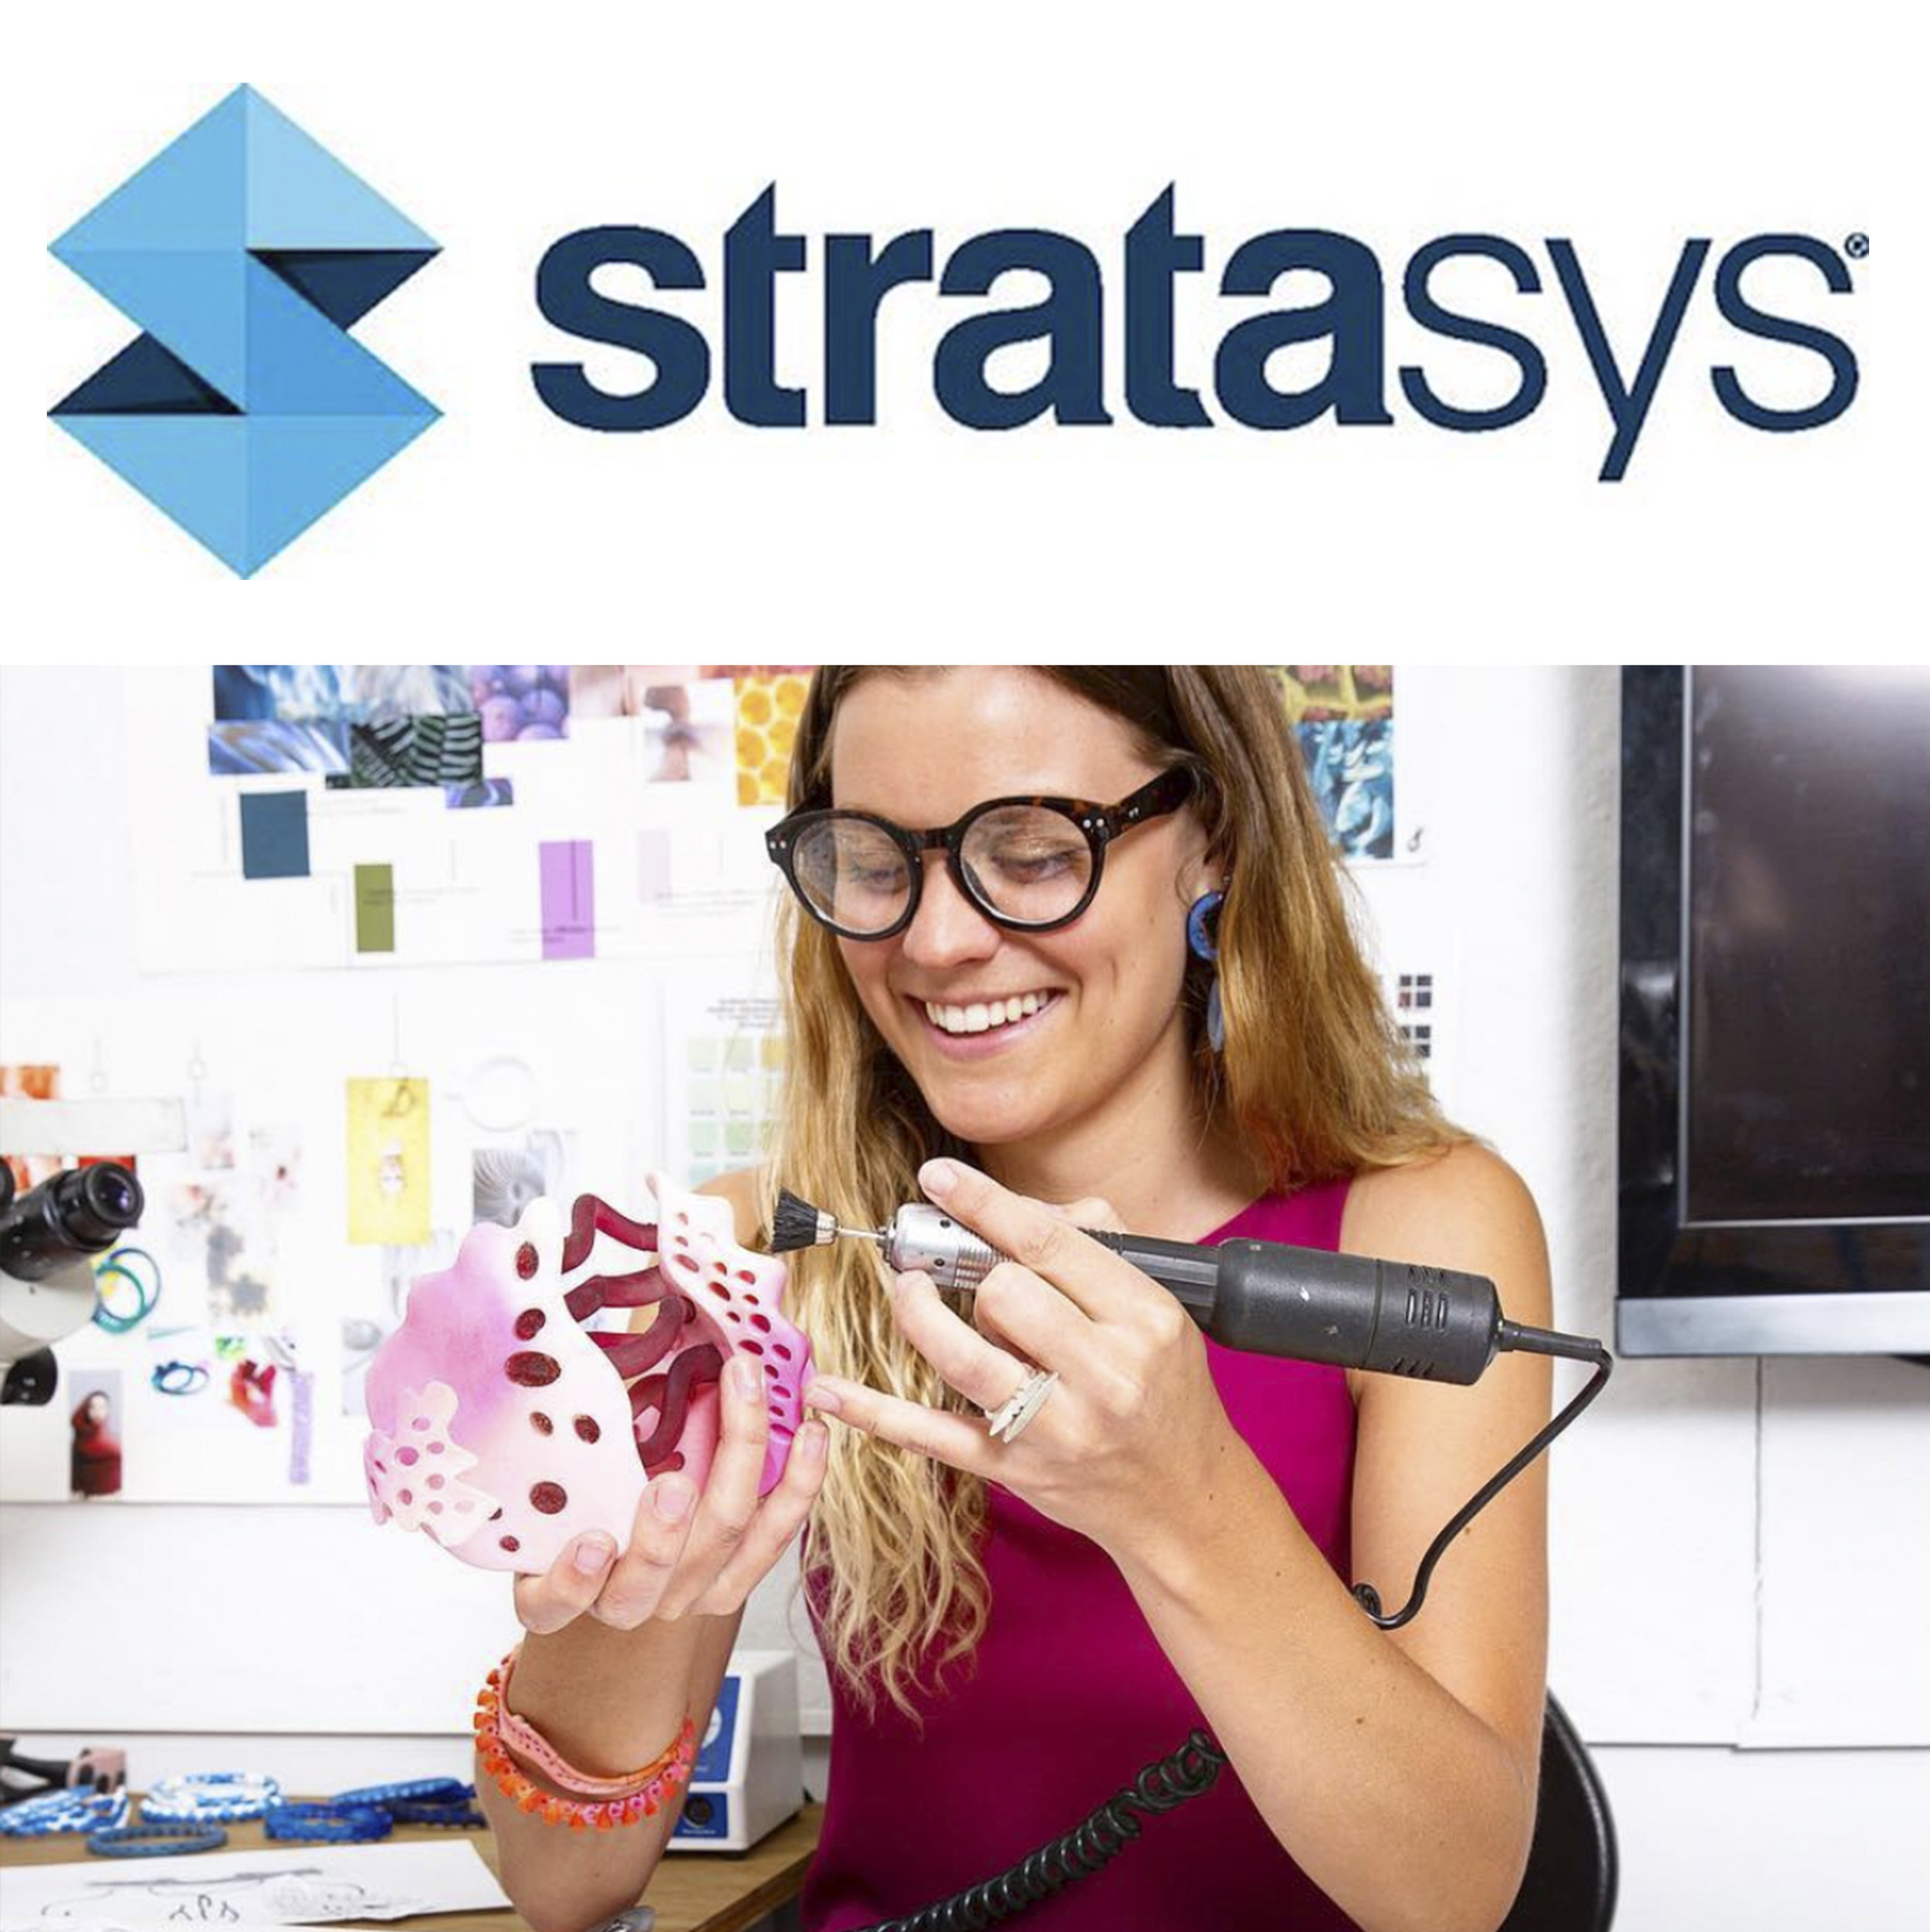 Stratasys-Stratasys Continuous Build 3D Demonstrator-Smart-Scalable-Reliable-SCAD.jpg